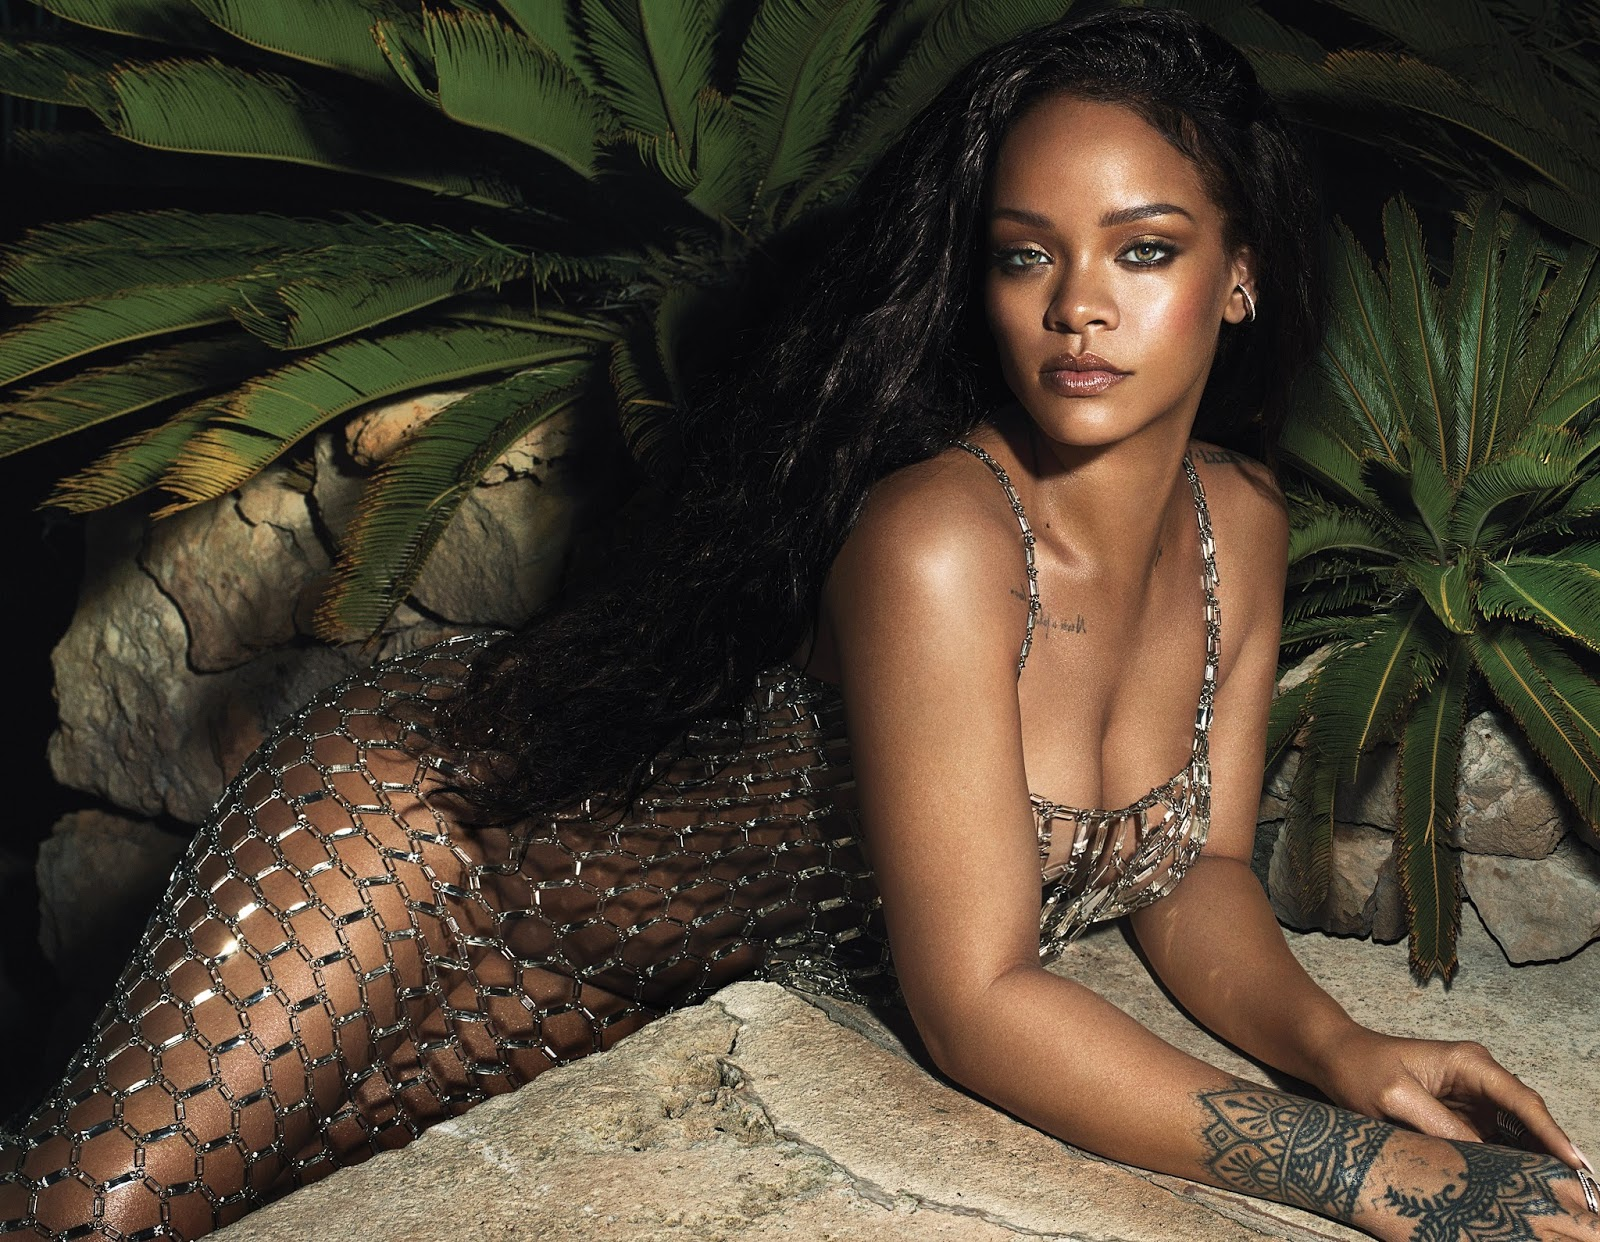 Rihanna Vogue US June 2018 photos